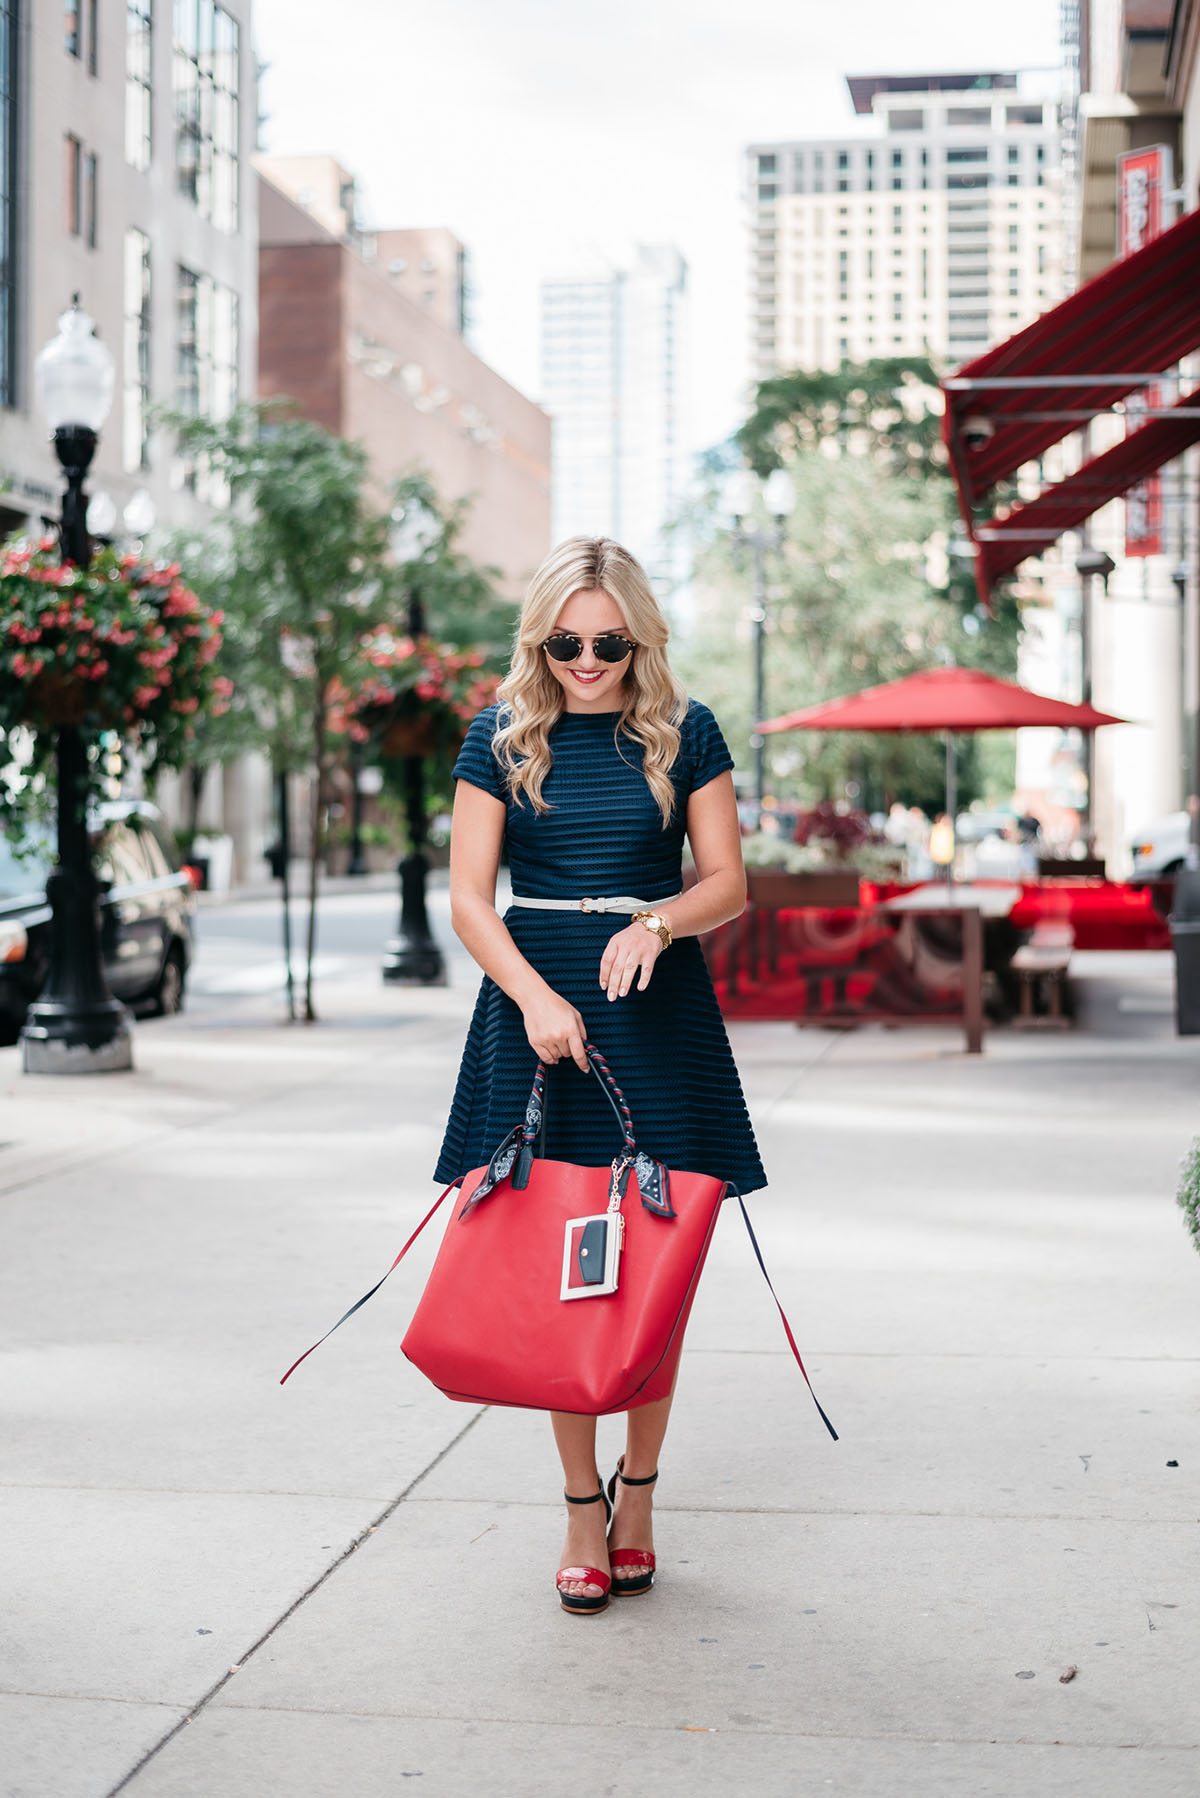 Bows & Sequins holding a Gigi x Tommy collaboration red reversible tote and wearing a navy fit and flare dress.